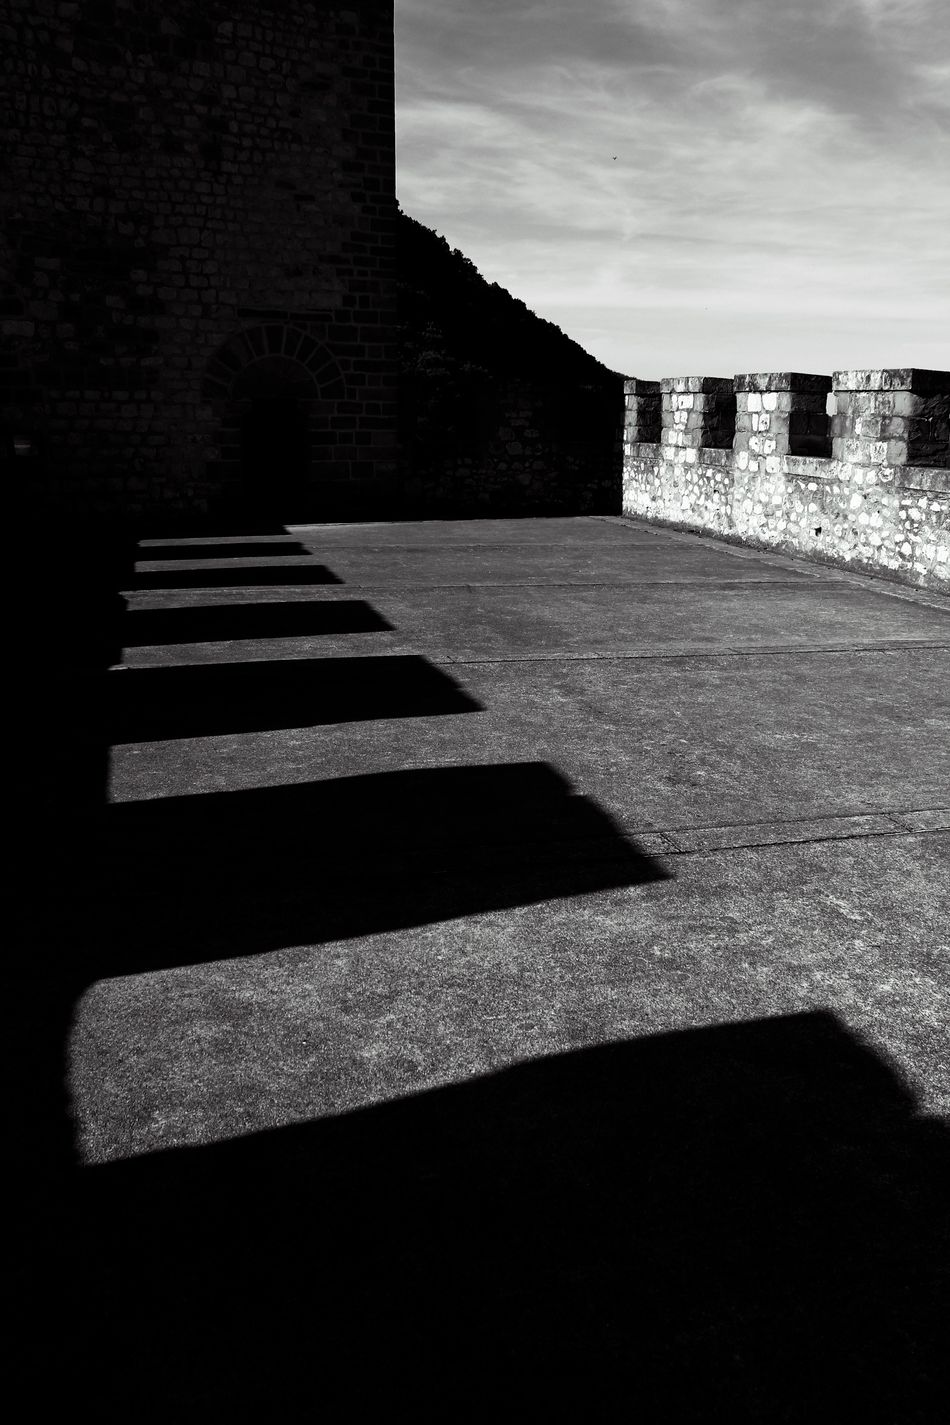 Château de Foix Architecture Blackandwhite Building Exterior Built Structure Bw Day Geometry Light And Shadow Midi-Pyrenees Monochrome Monochrome Photography No People Outdoors Pyrenees Sky Travel